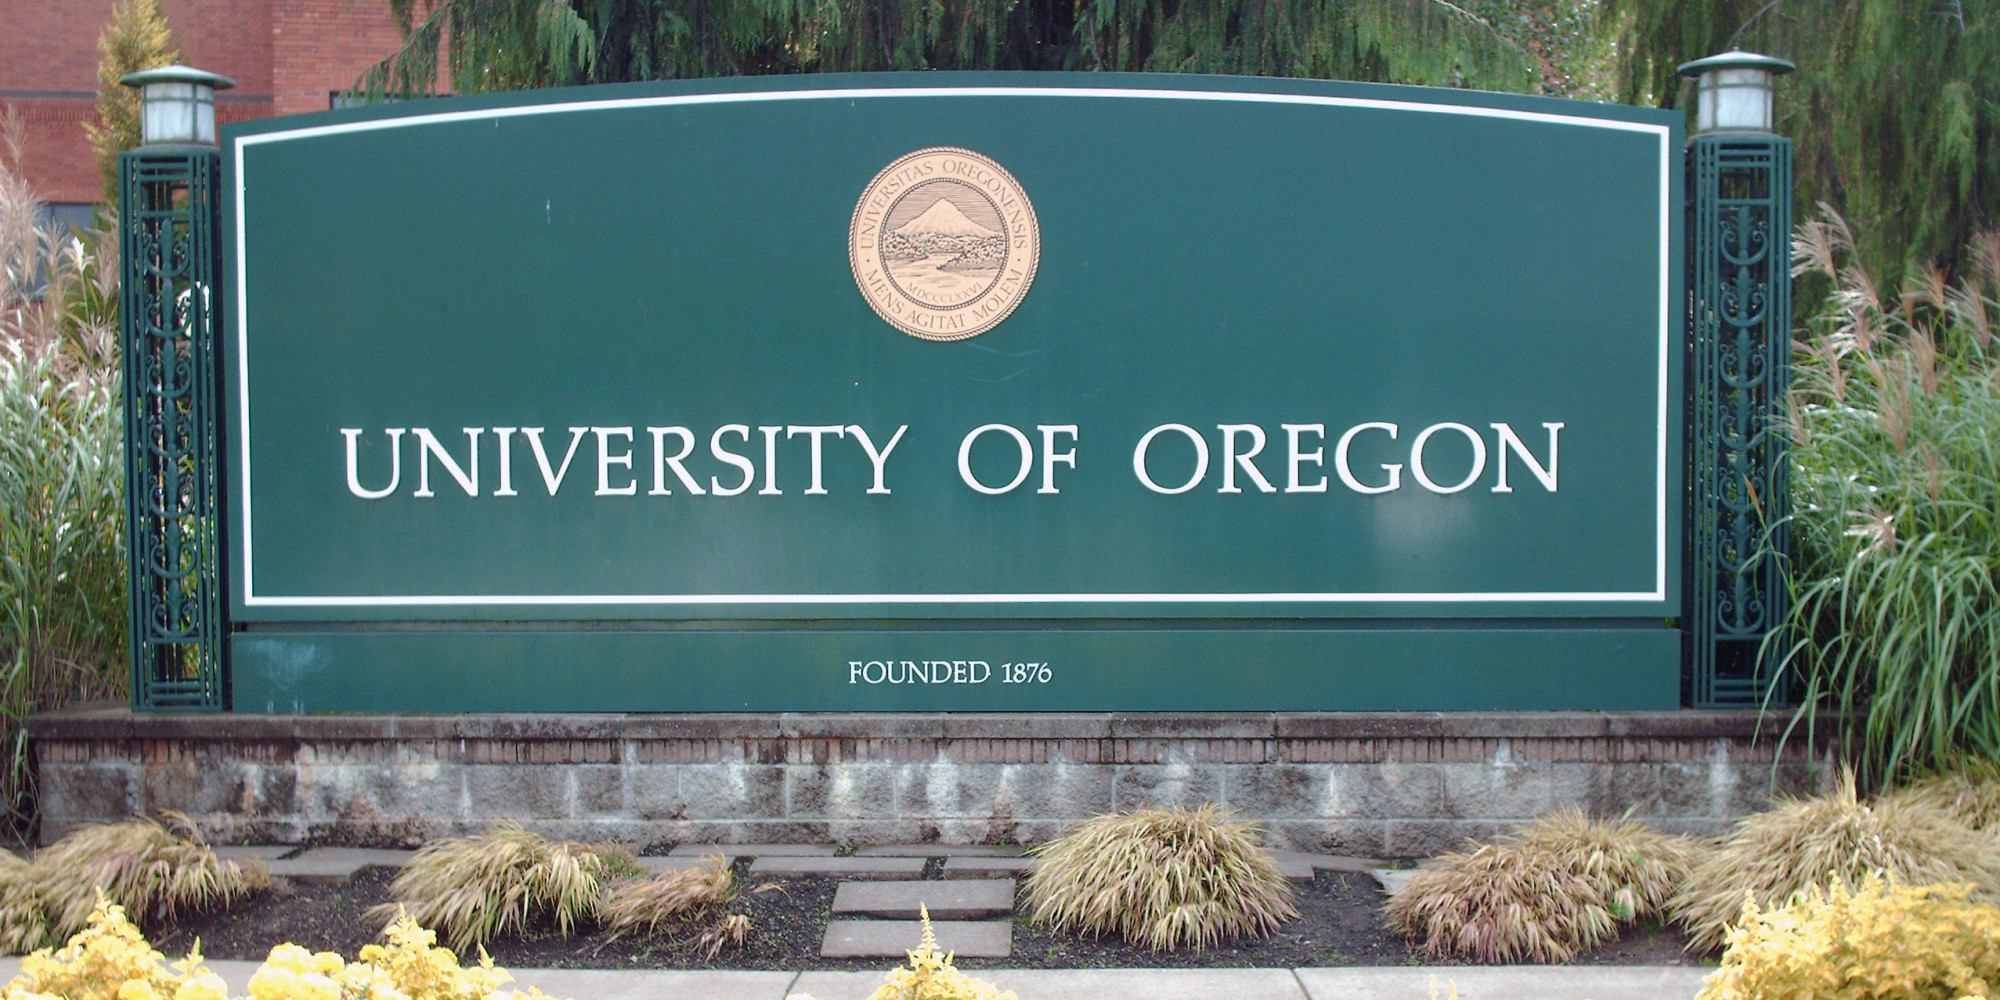 a personal narrative about deciding to attend the university of oregon Have you received a personal invitation to apply for a student credit card  university of oregon, university of washington,  what will it really cost you to attend oregon state university  get personalized results based on your financial situation.